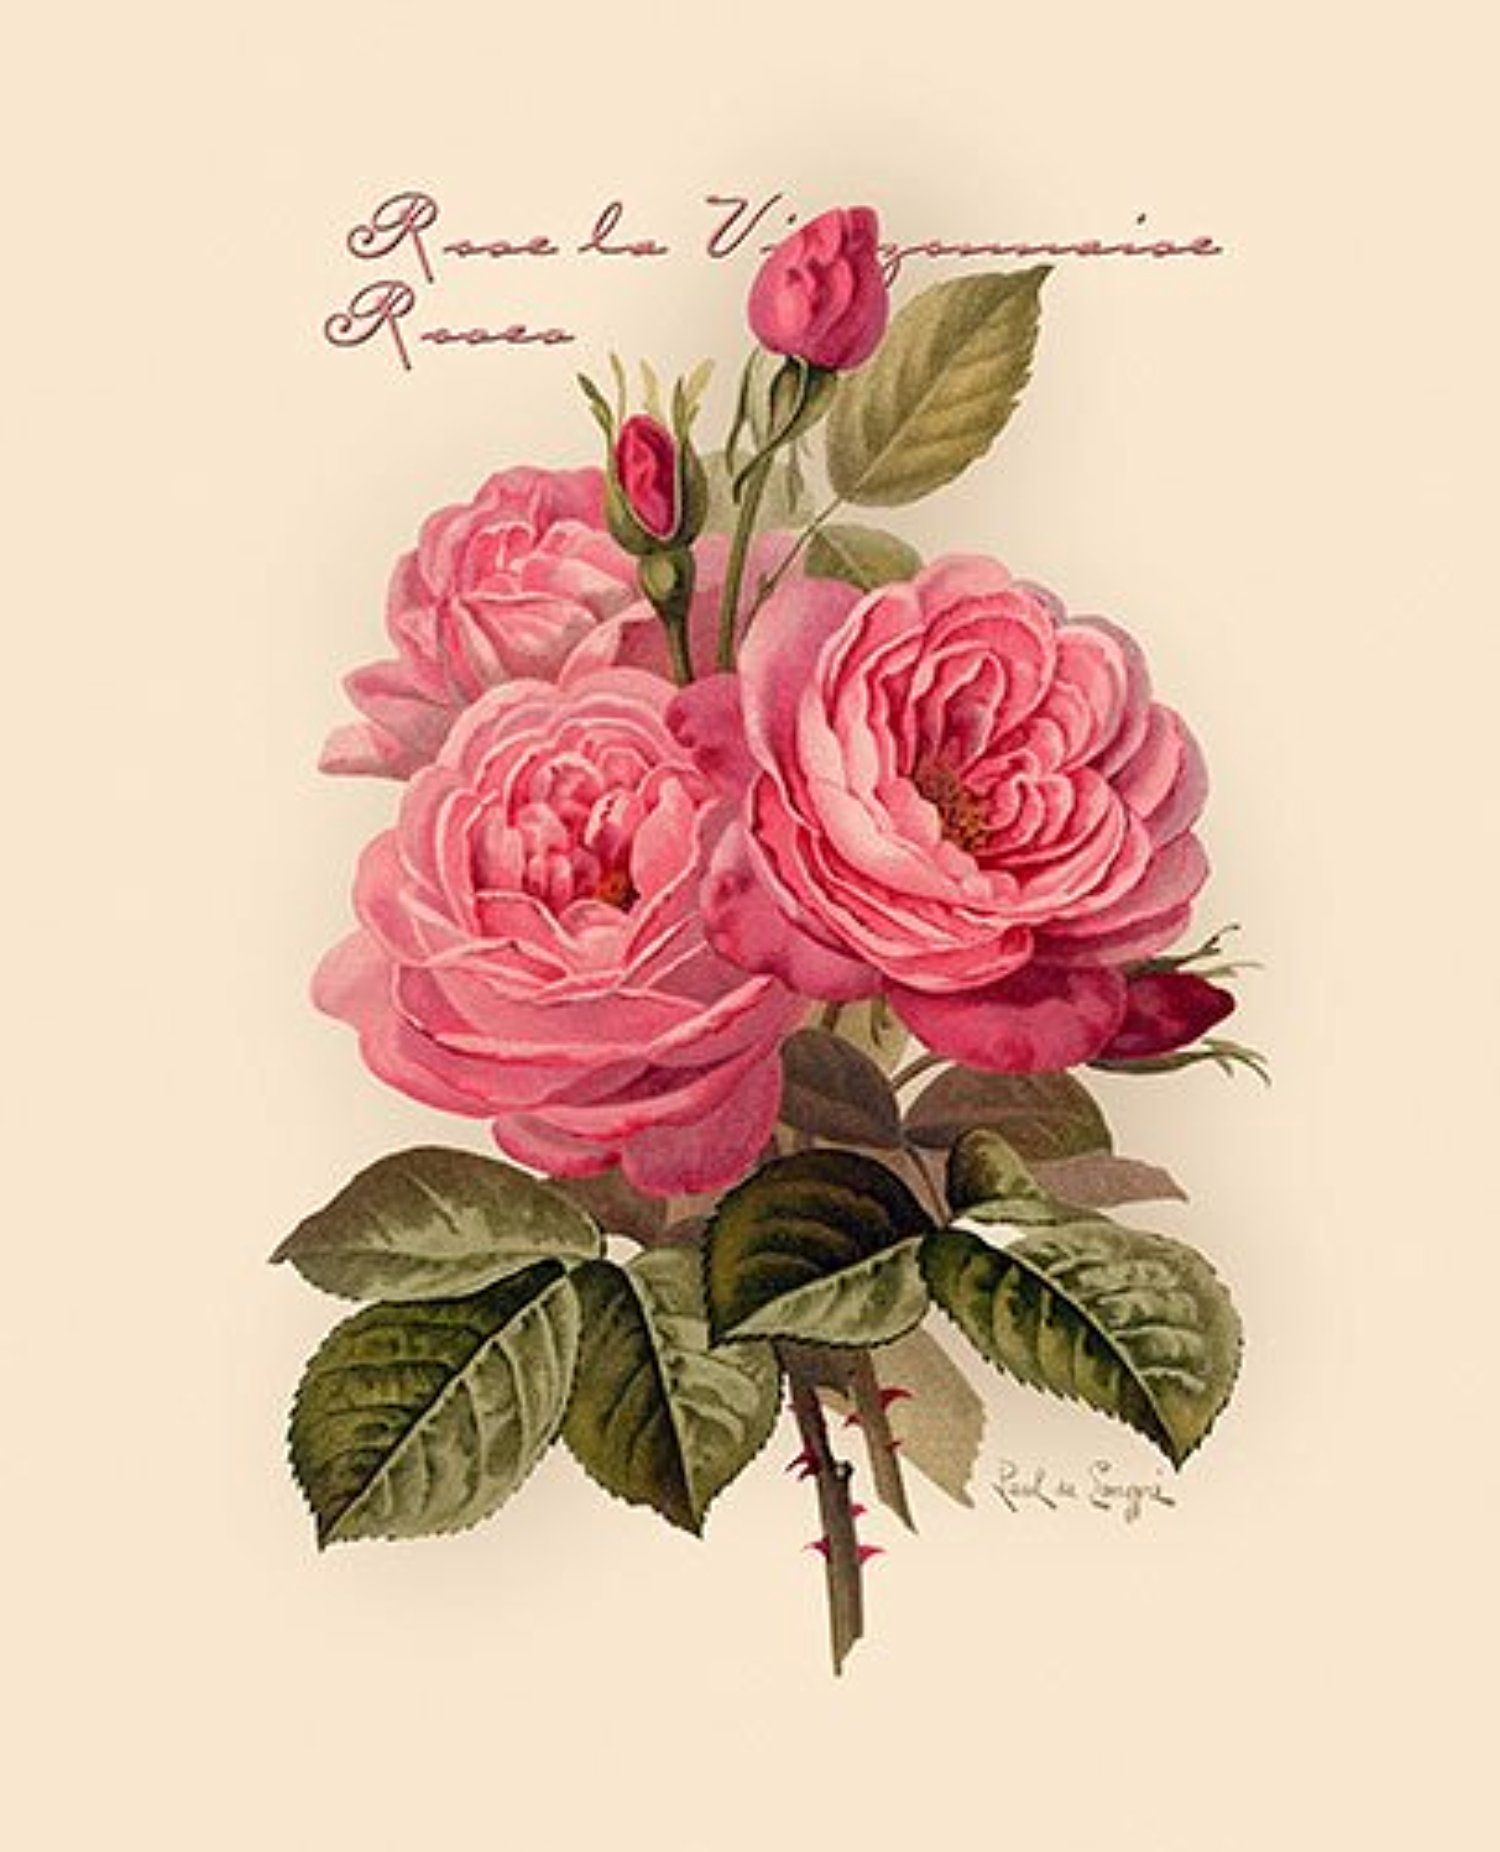 Art Print of Vintage Art American Beauty Roses by Paul de Longpre